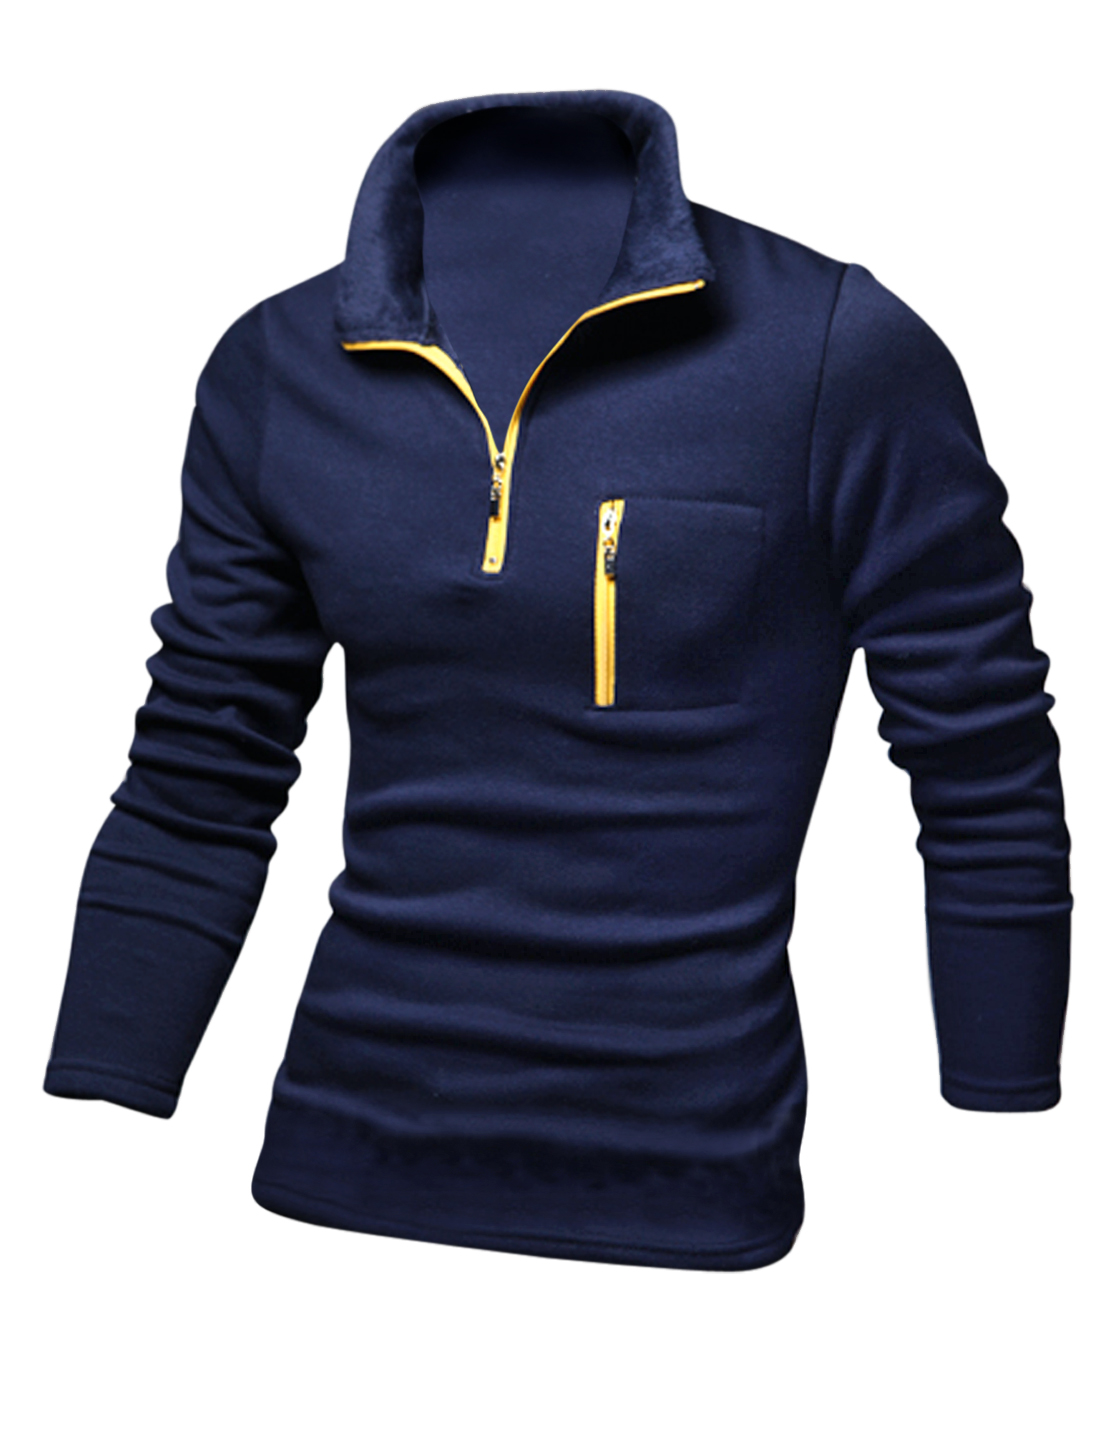 Men Convertible Collar Zip Up Front w Chest Pocket T-shirt Navy Blue M